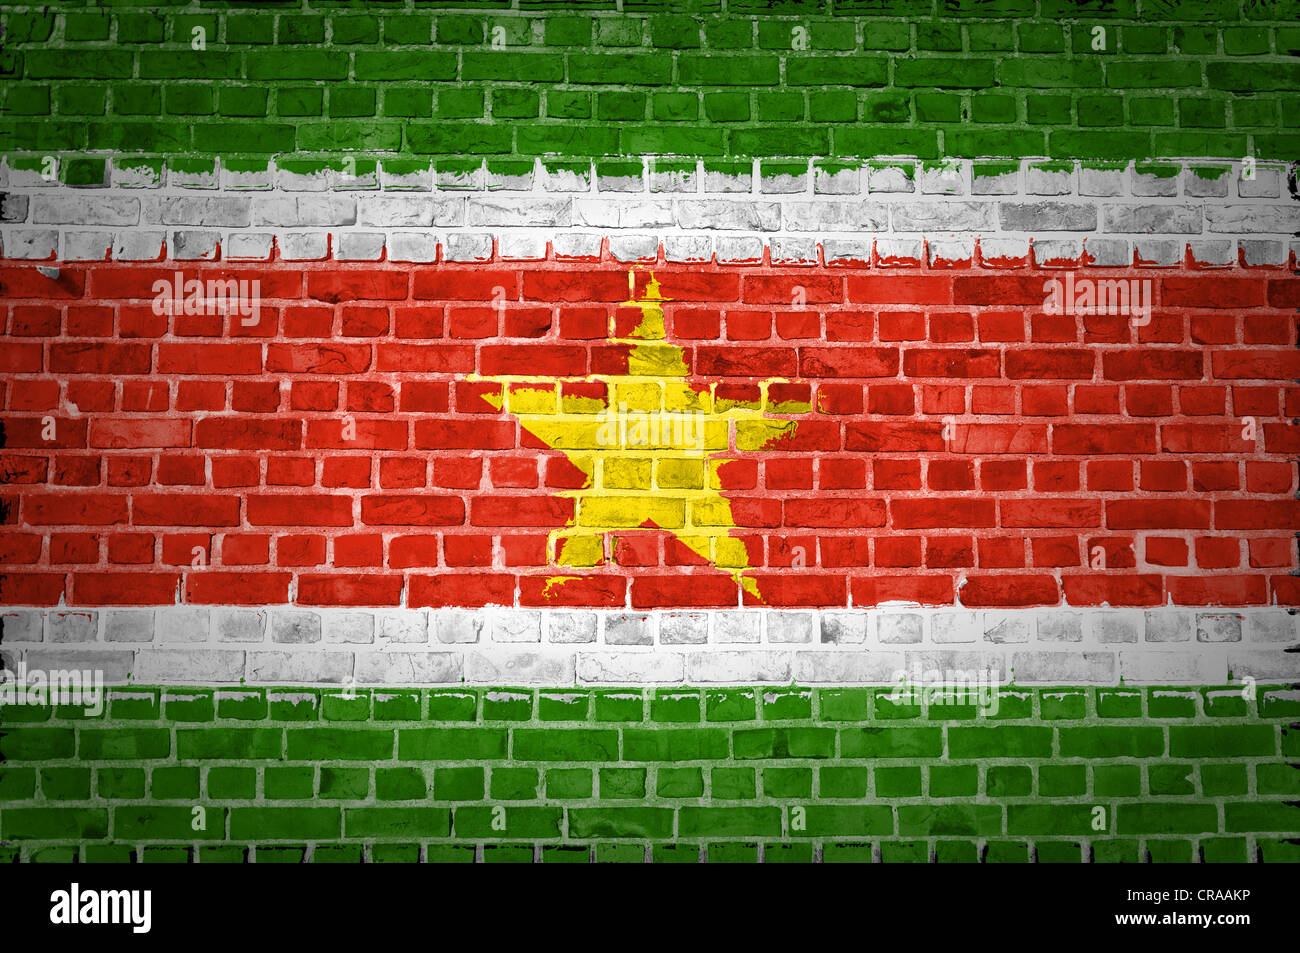 An image of the Suriname flag painted on a brick wall in an urban location - Stock Image